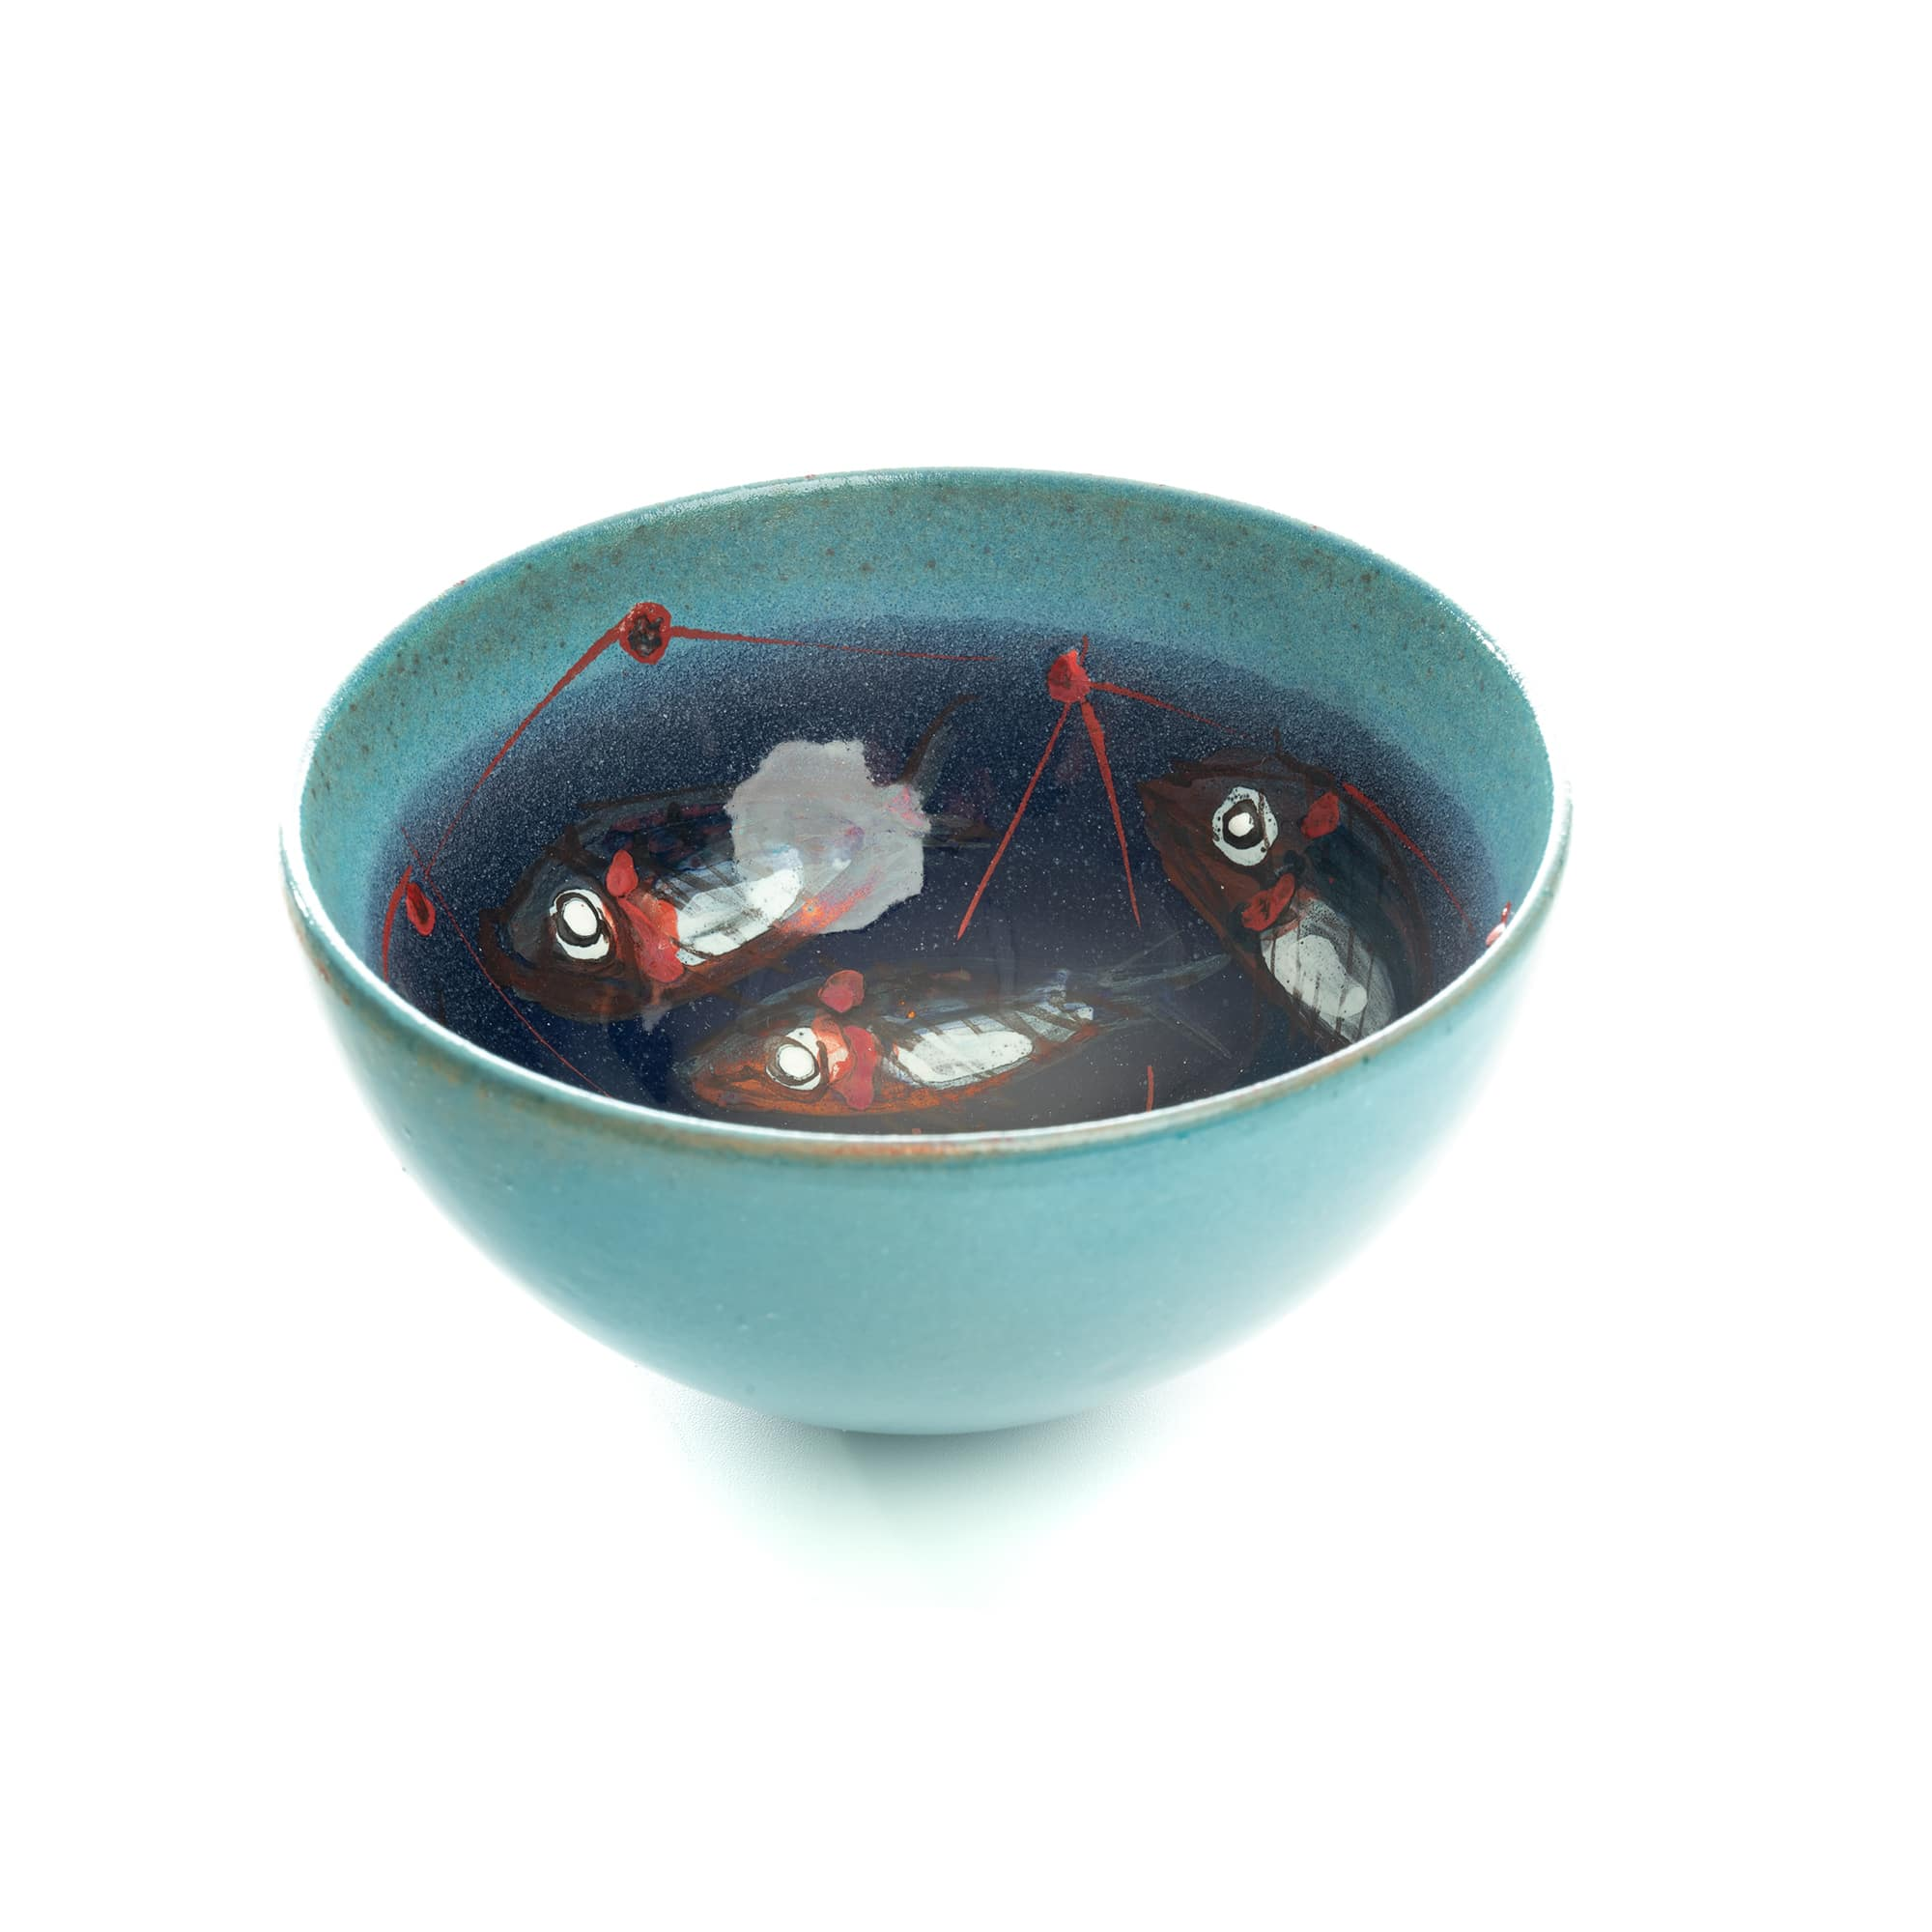 Vignoli Small Bowl with Painted Fish Design 13